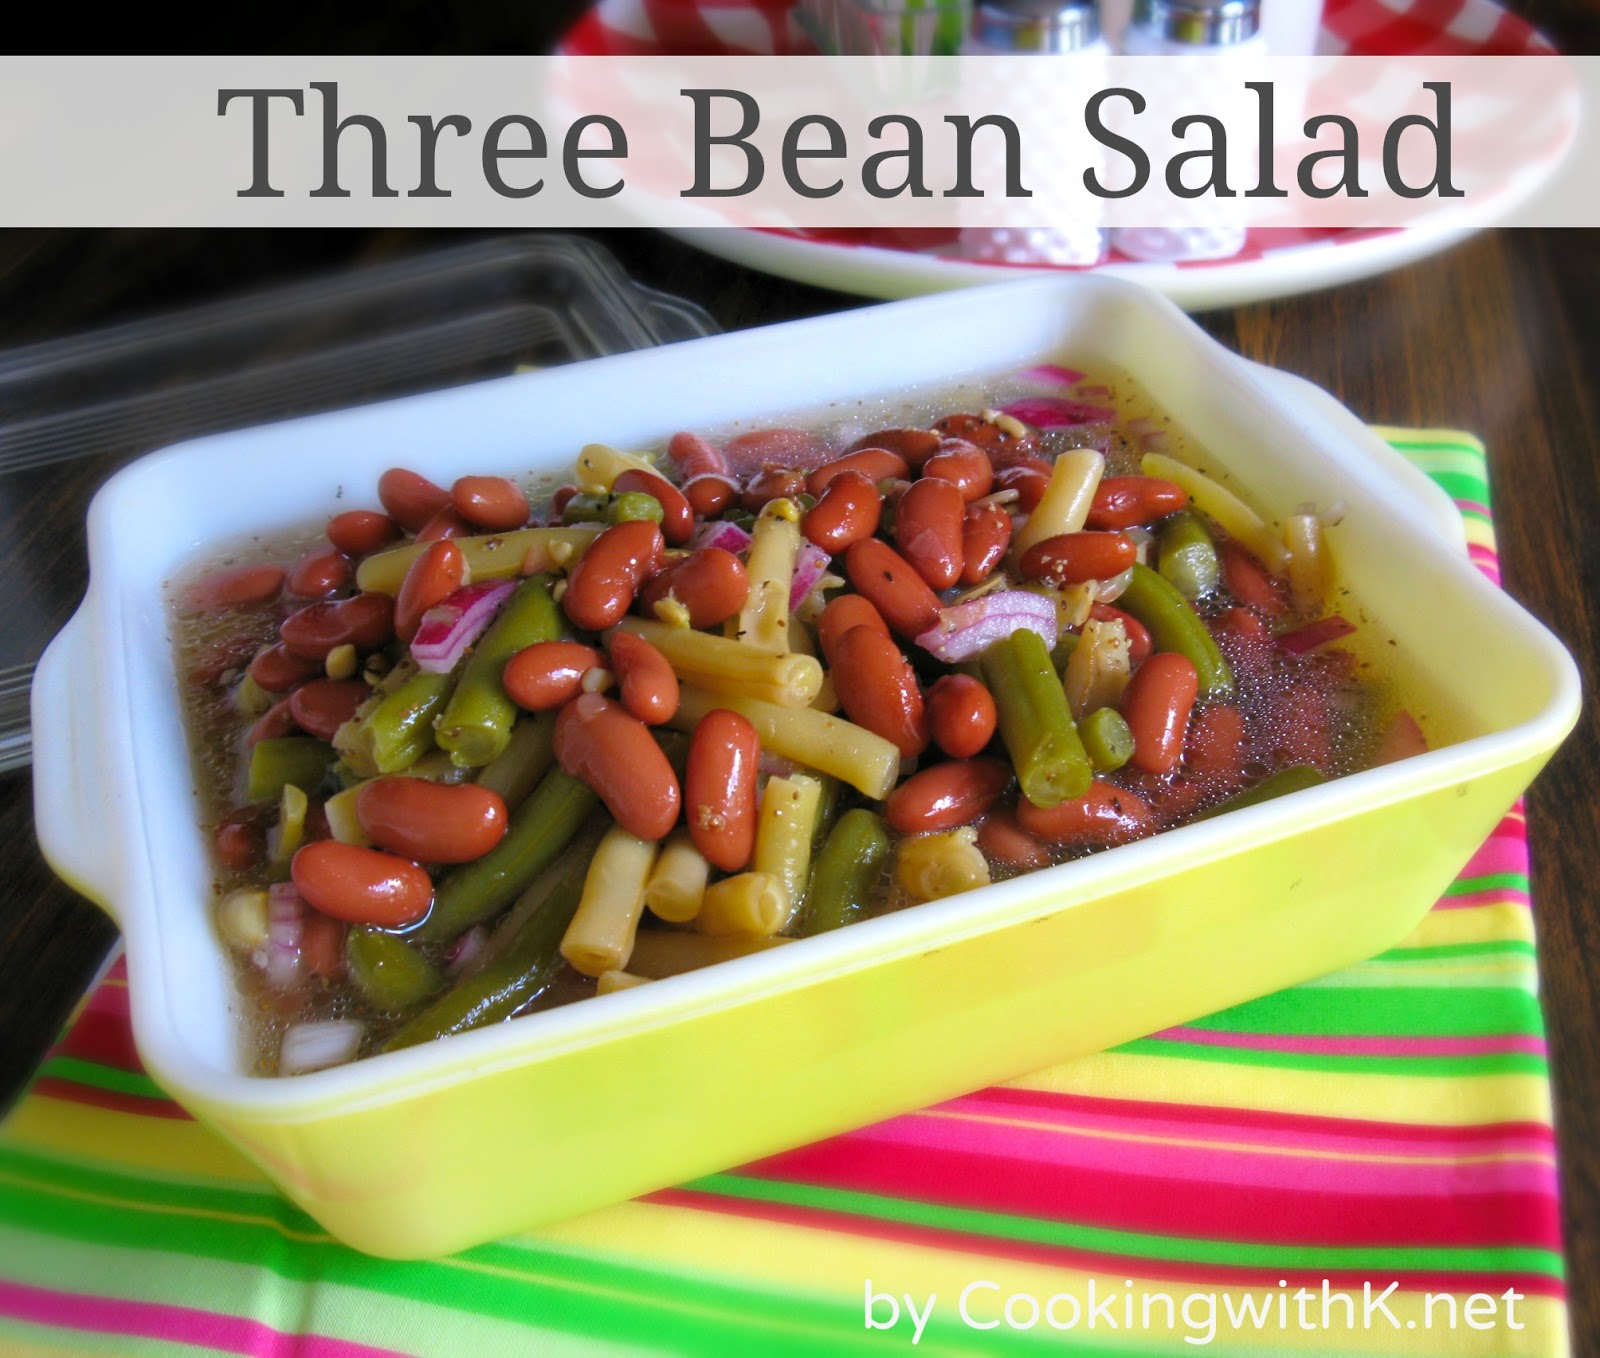 Cooking with K: A Throwback Salad! Three Bean Salad